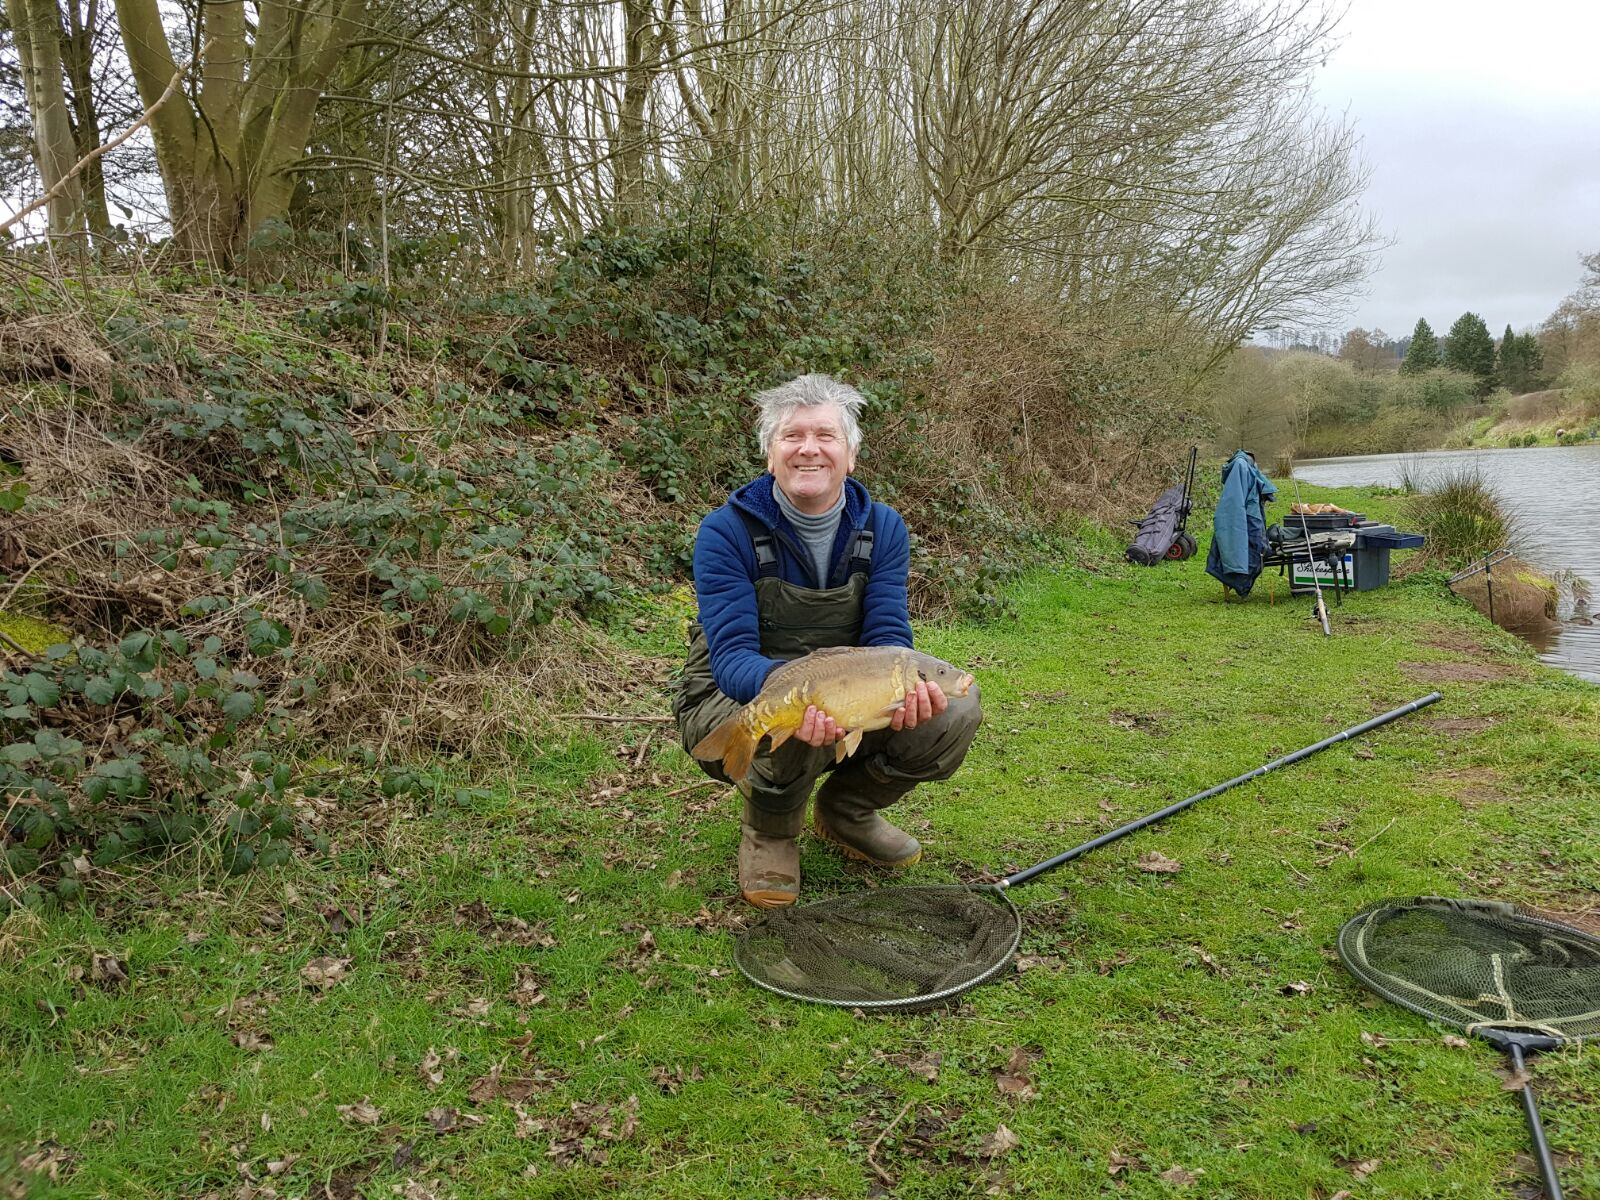 DAVE WITH WAGGLER CAUGHT CARP. 31/03/17